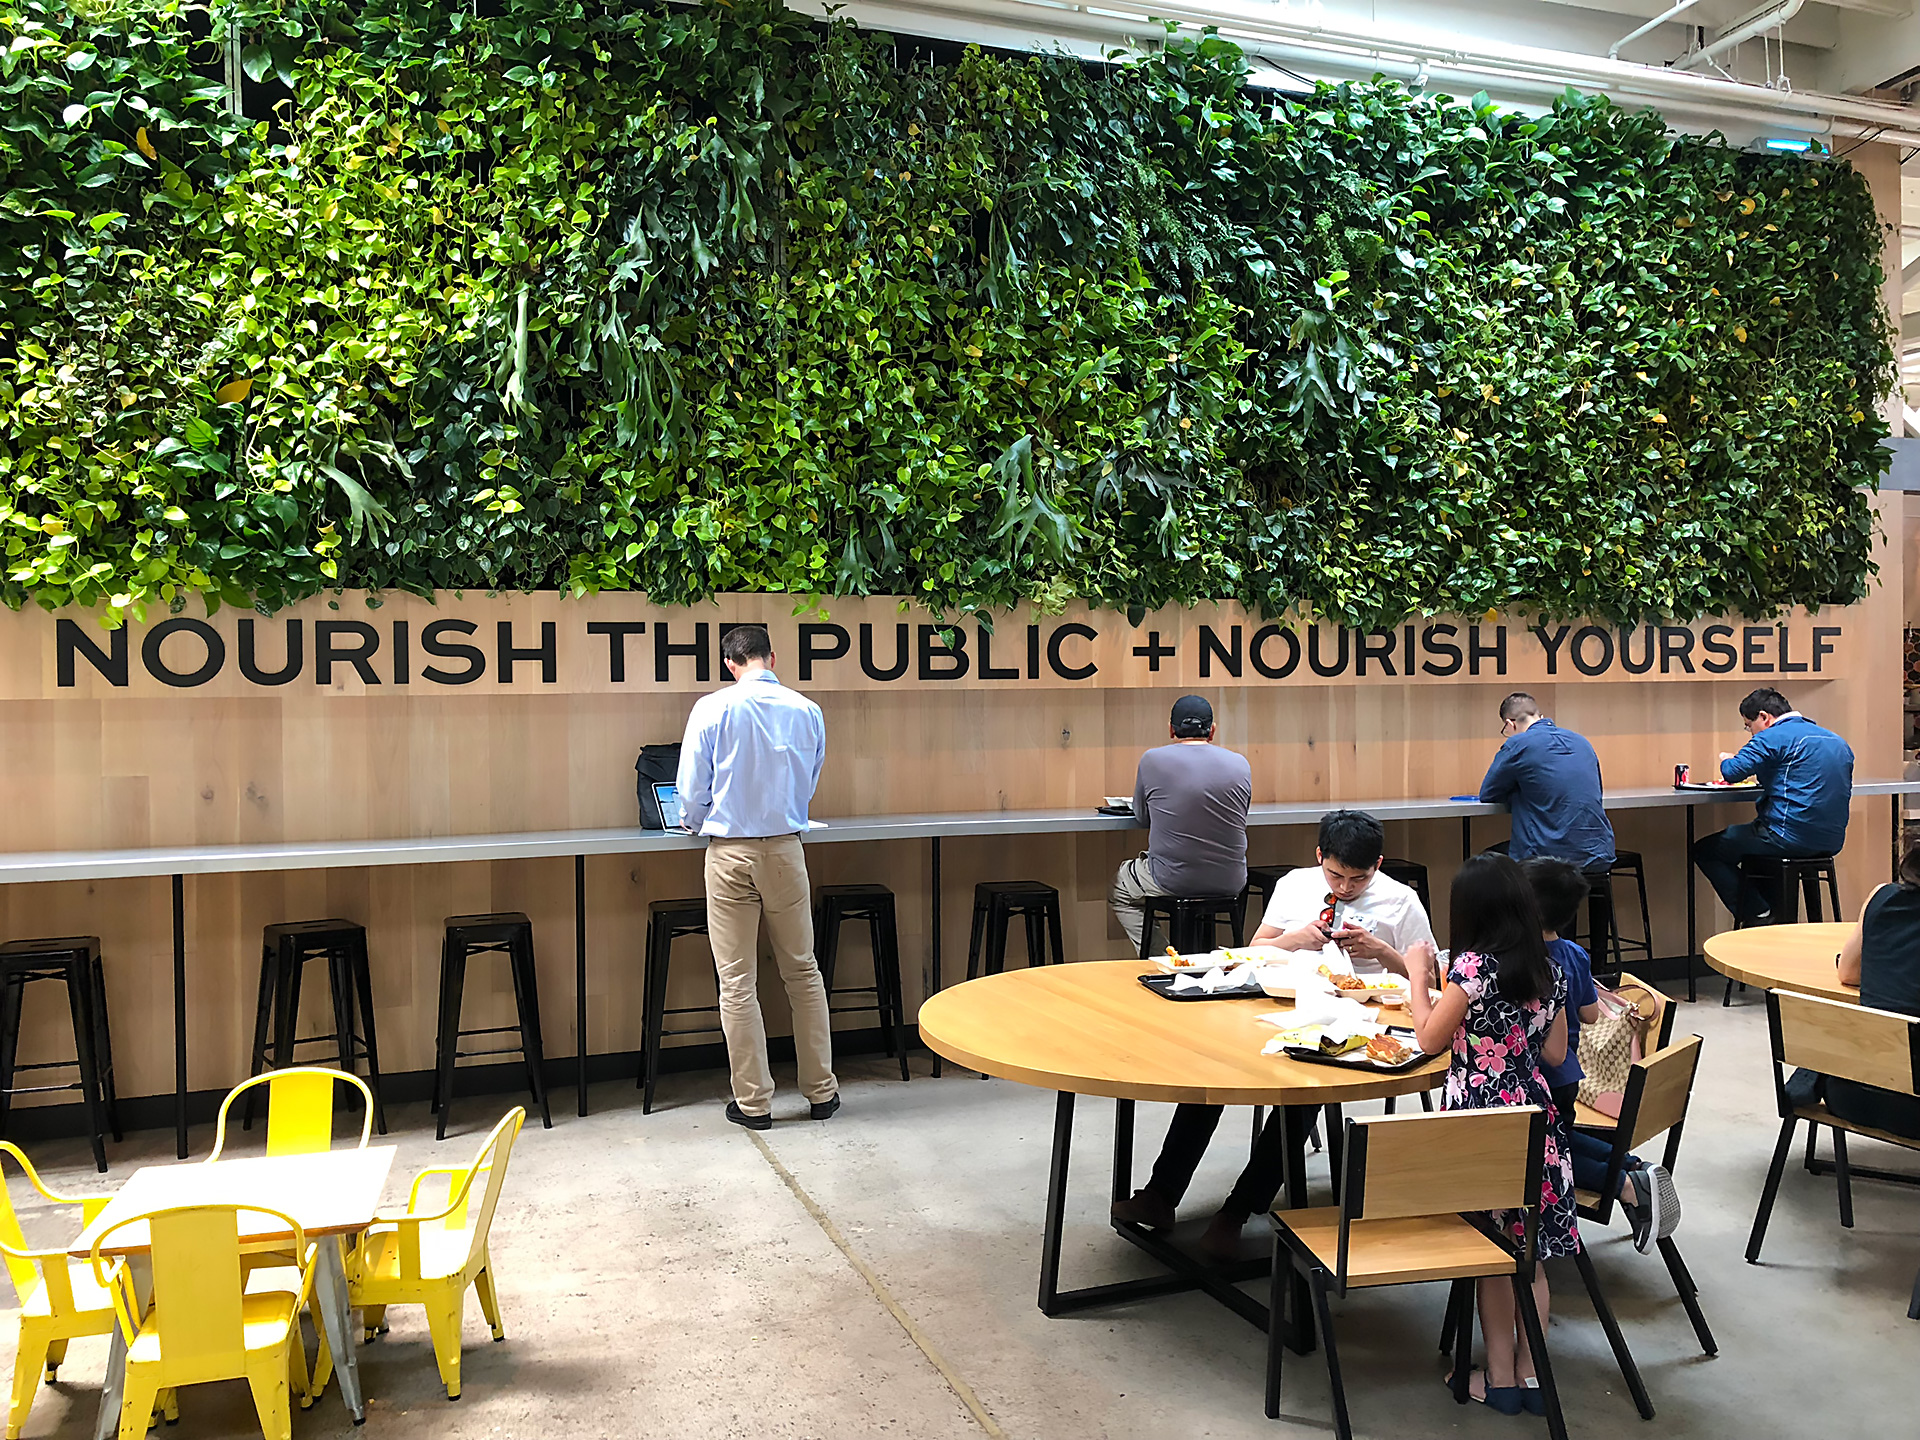 """Nourish The Public + Nourish Yourself"" signage at The Emeryville Public Market next to Minnie Bell's kiosk."